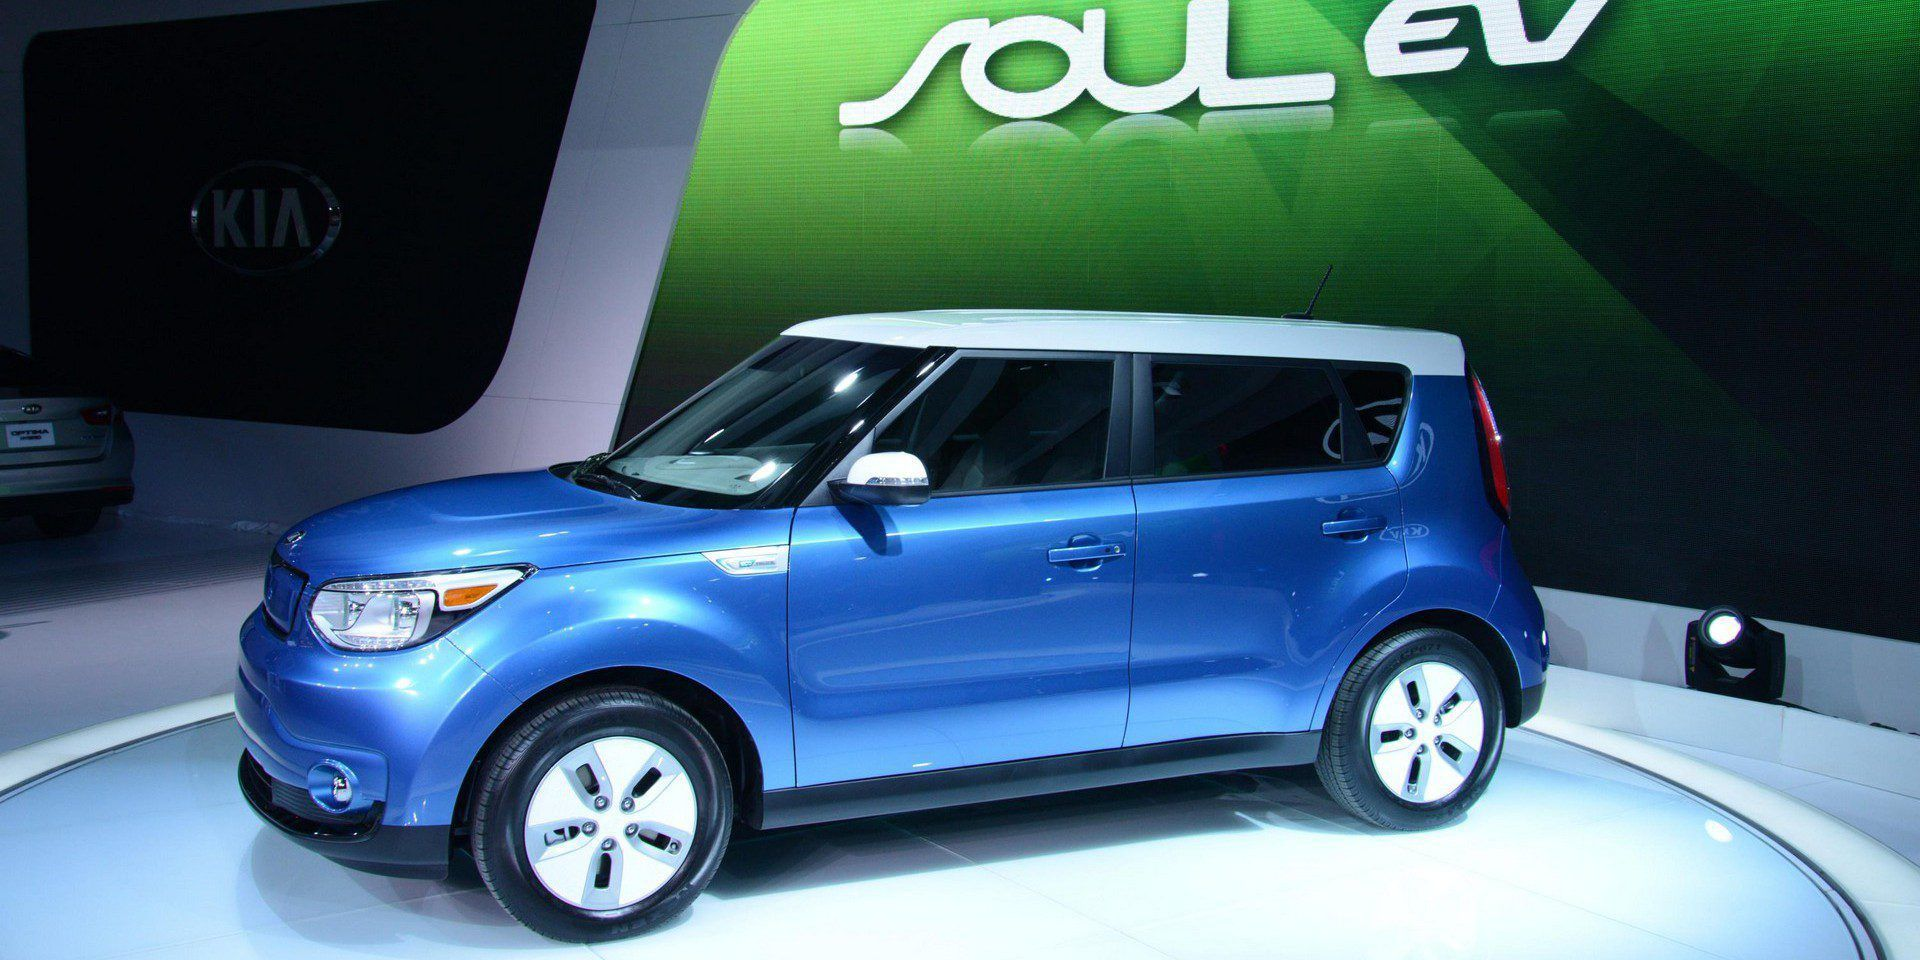 Pin By K Y Leung On Small Car Pinterest Kia Soul Cars And